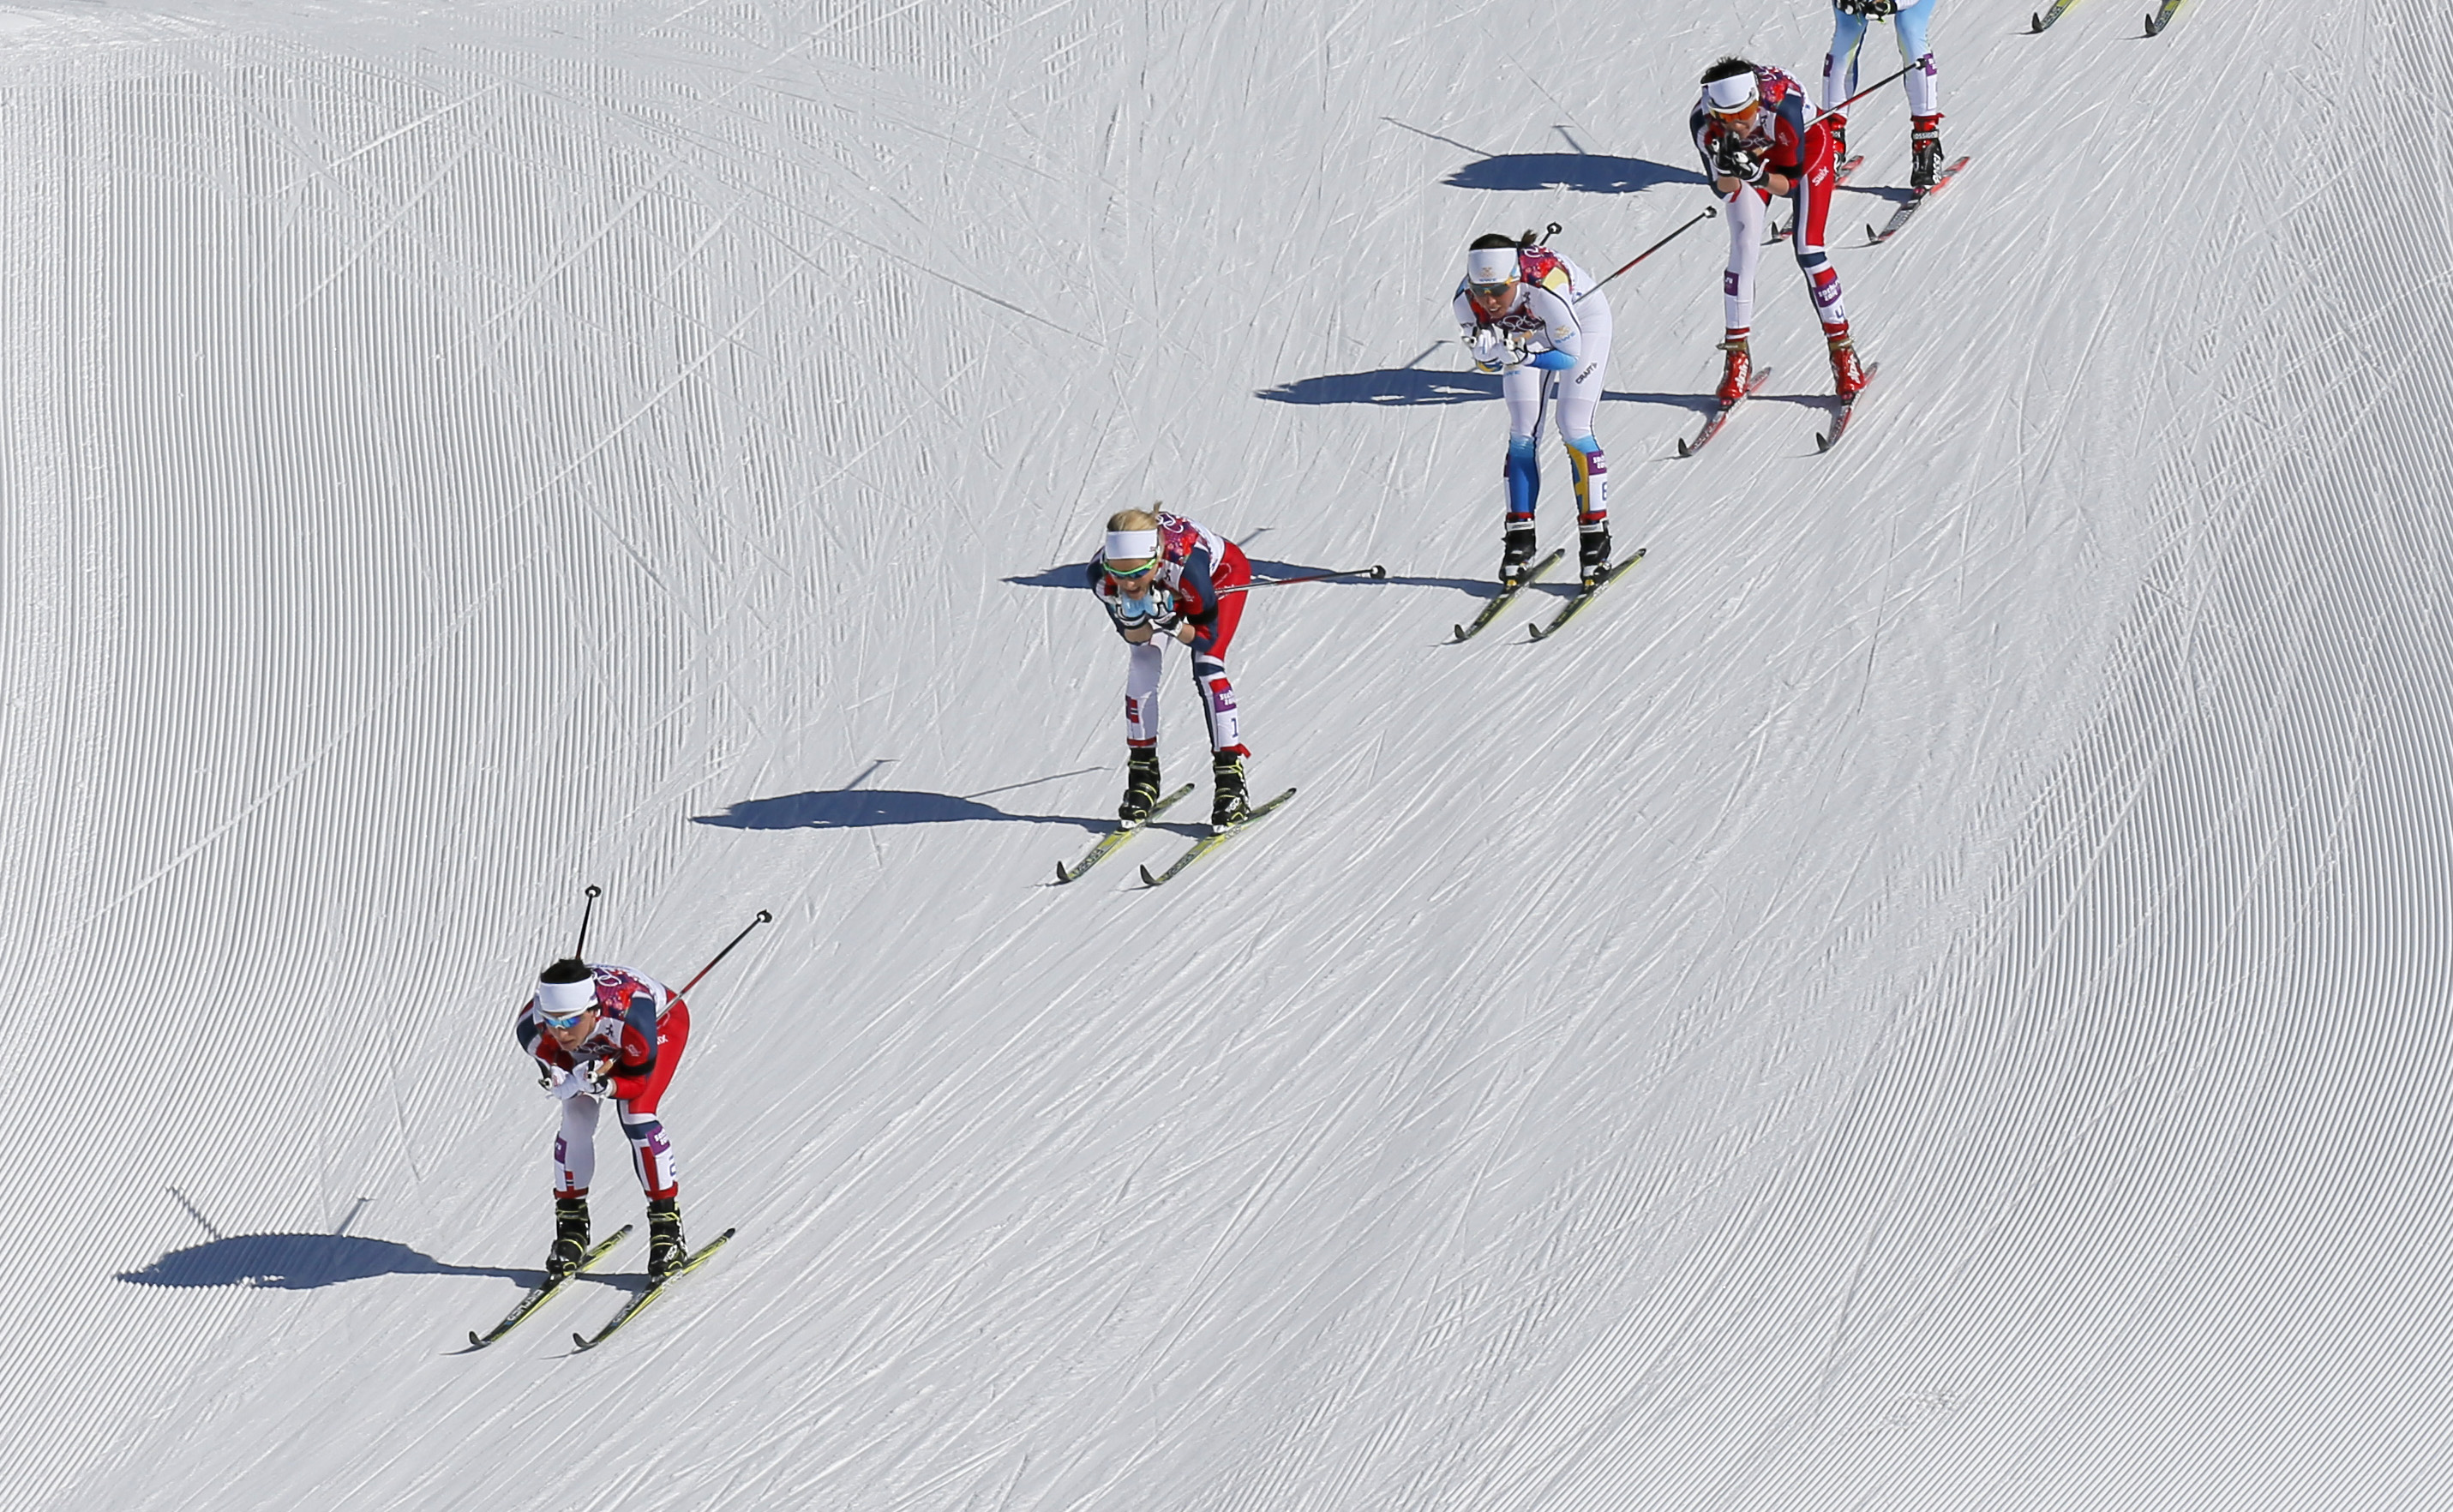 Norway's Marit Bjoergen, Norway's Therese Johaug, Sweden's Charlotte Kalla and Norway's Heidi Weng, from left, ski down a hill during the women's 15k skiathlon at the 2014 Winter Olympics, Saturday, Feb. 8, 2014, in Krasnaya Polyana, Russia. (AP Photo/Dmitry Lovetsky)